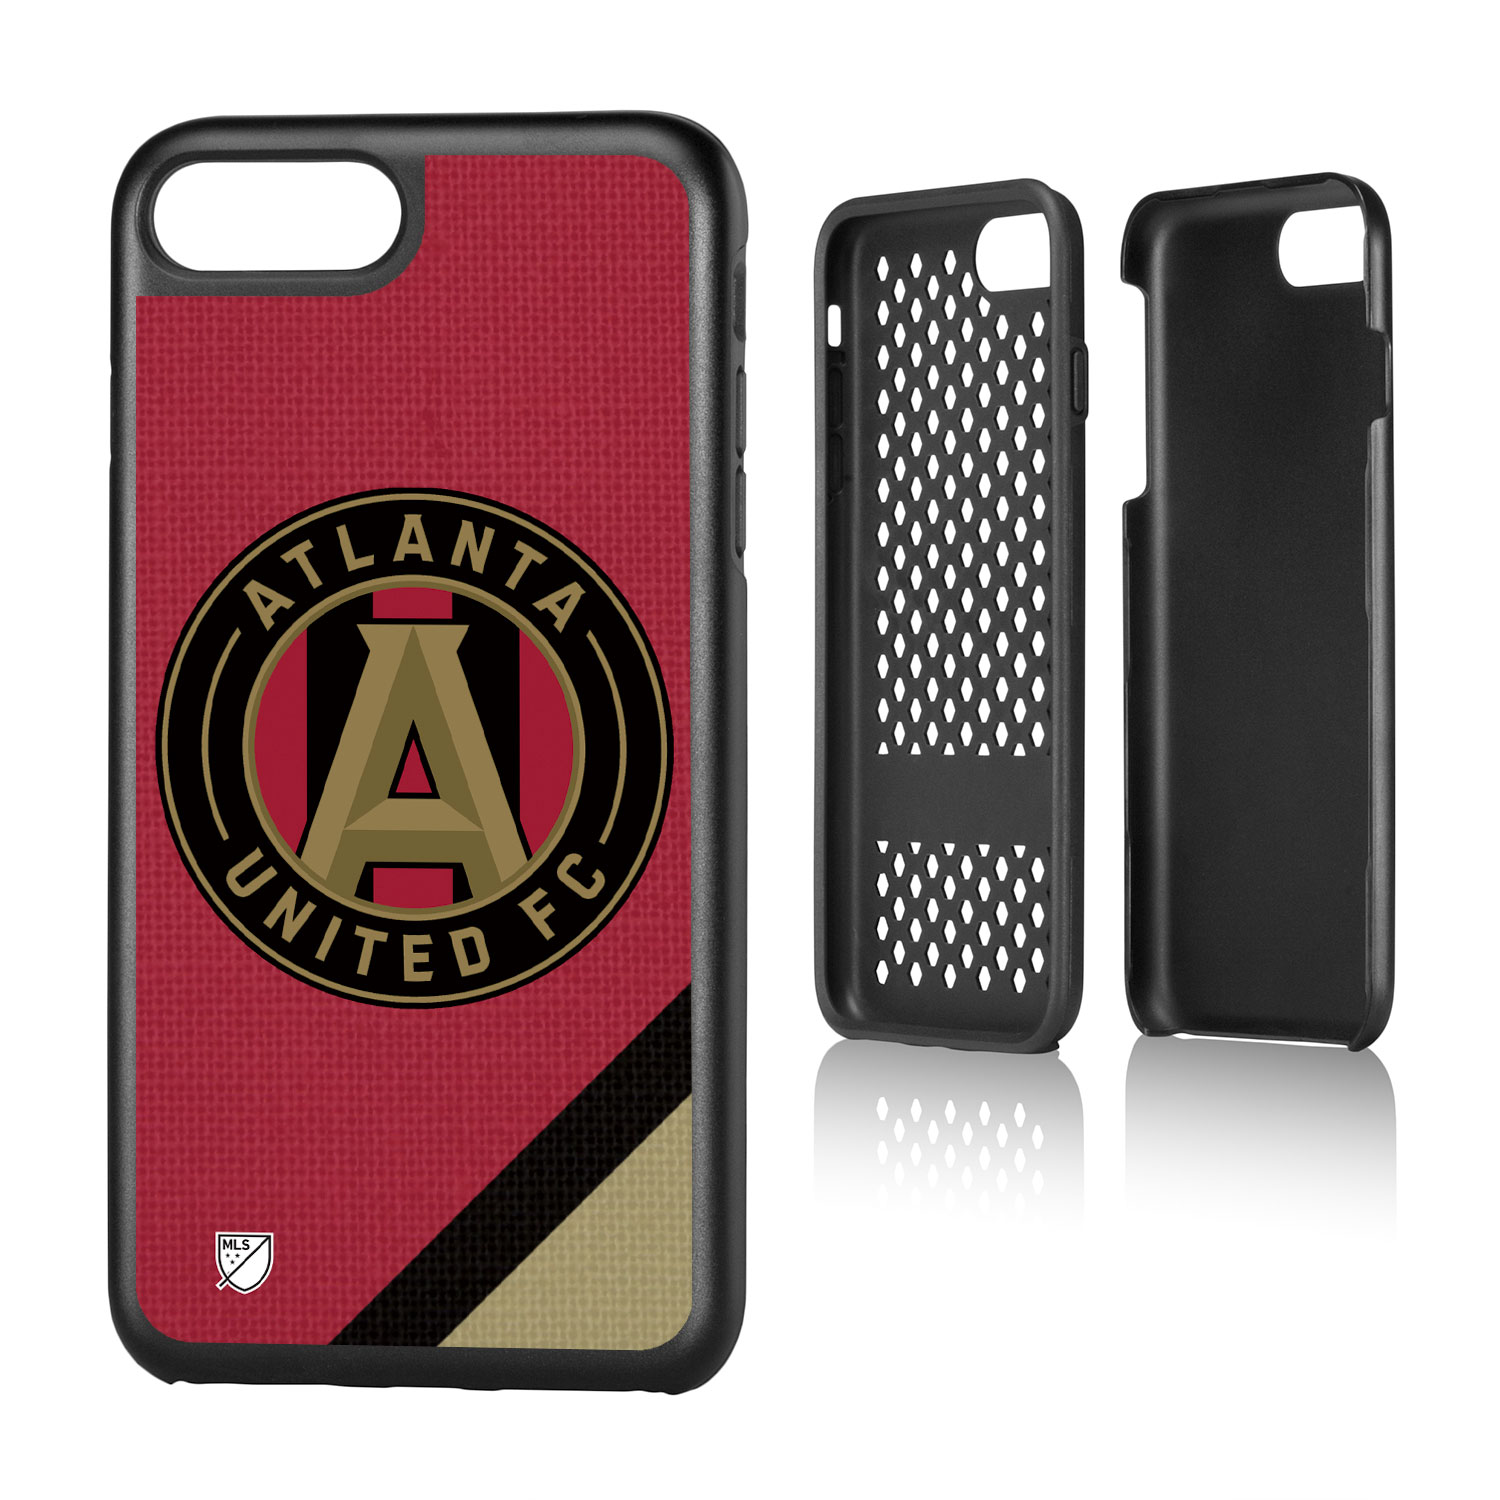 Atlanta United FC ATLUTD Solid Rugged Case for iPhone 8 Plus / 7 Plus